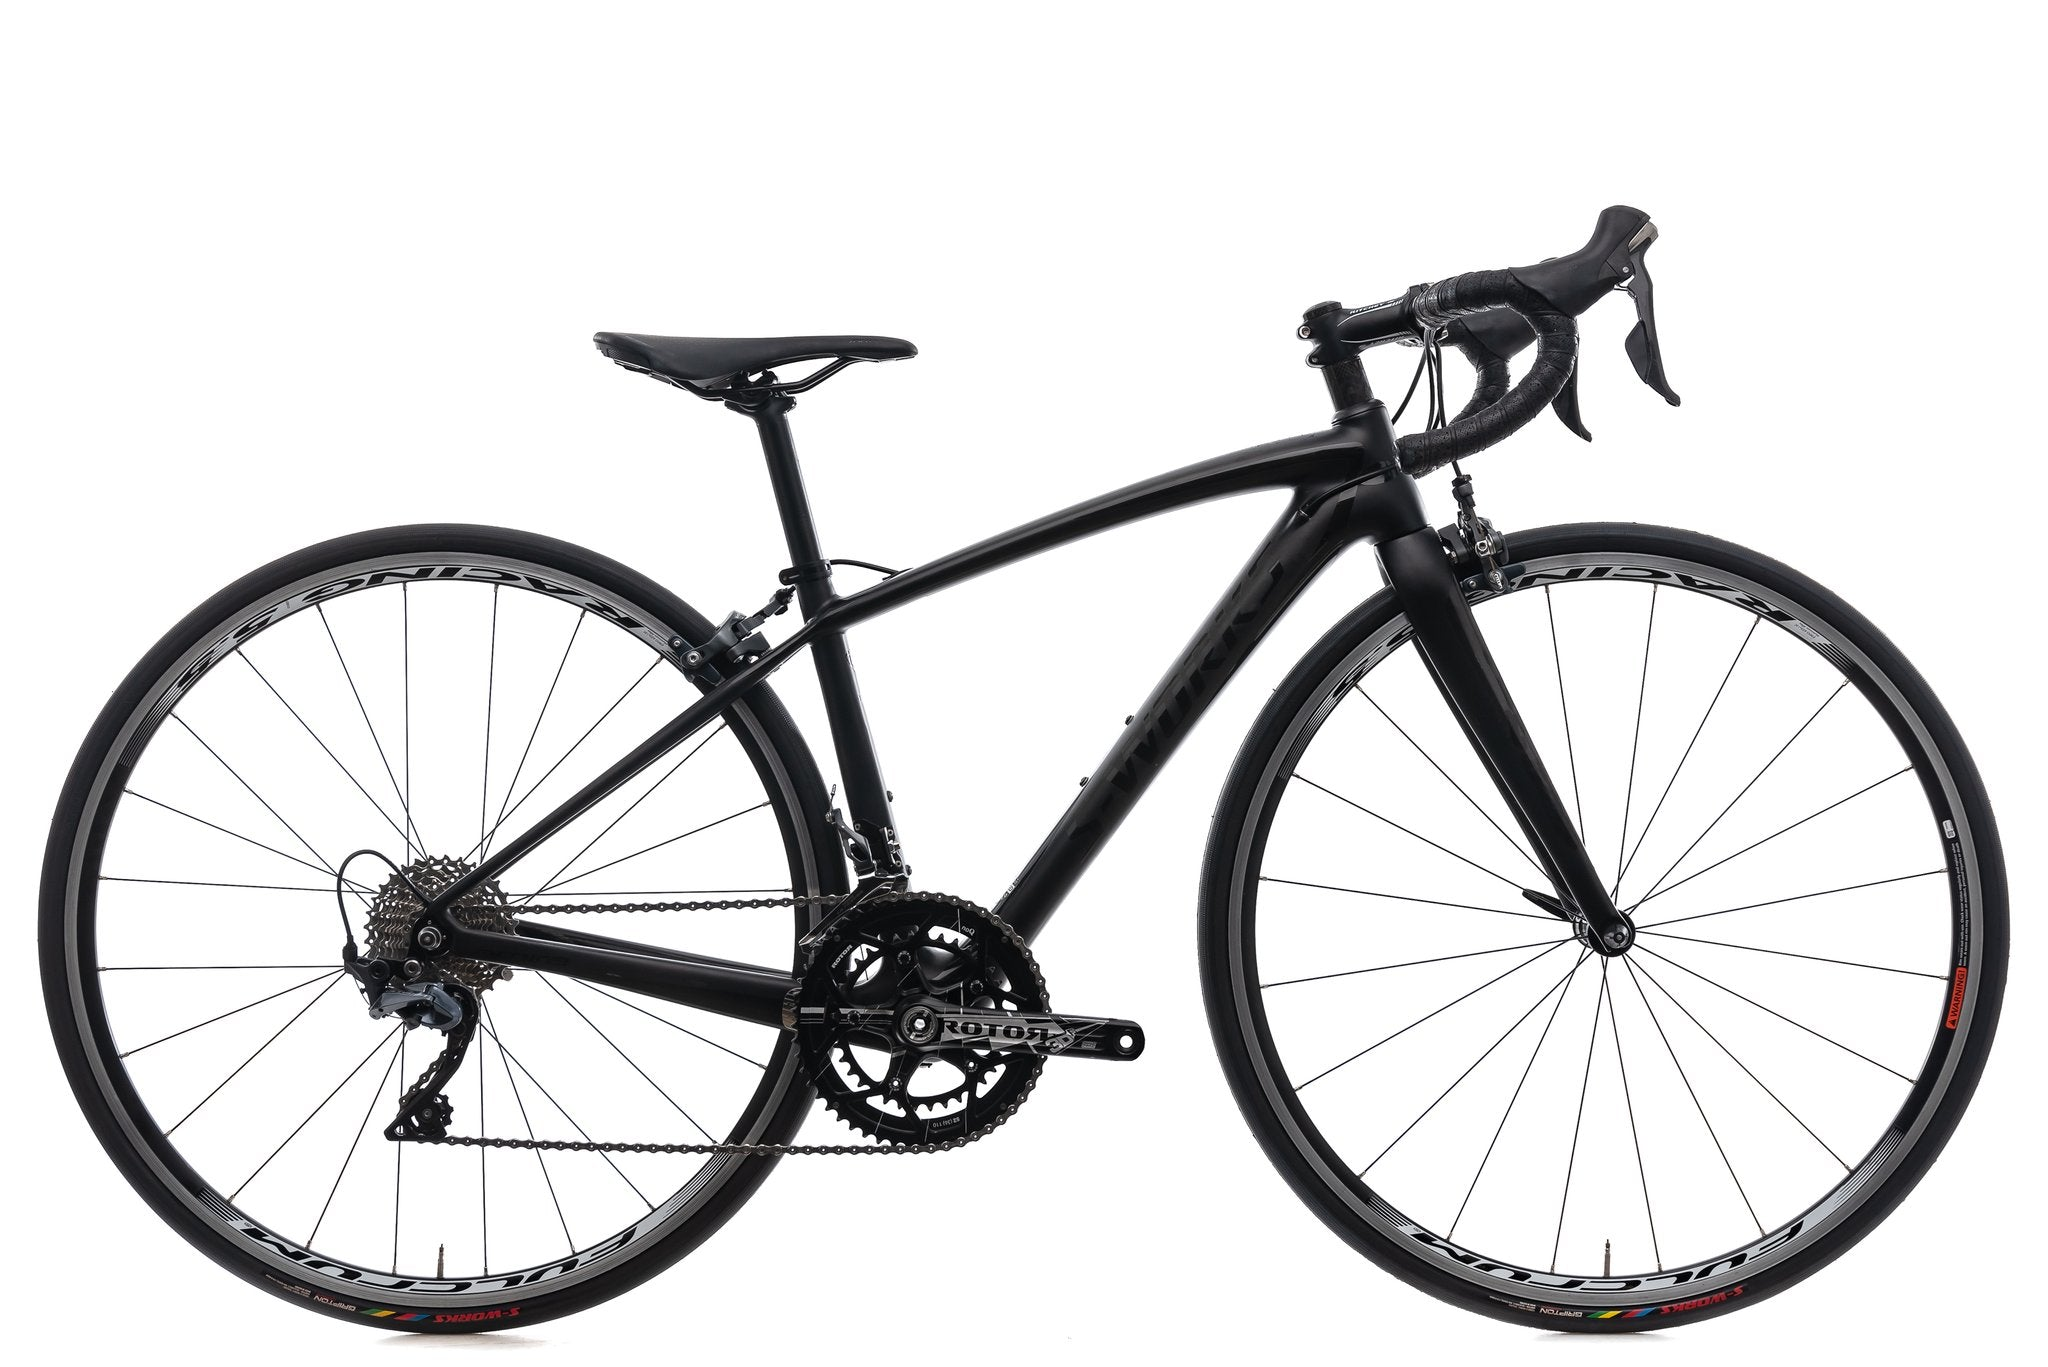 Specialized makes a number of women's specific bikes, including the Amira road bike.